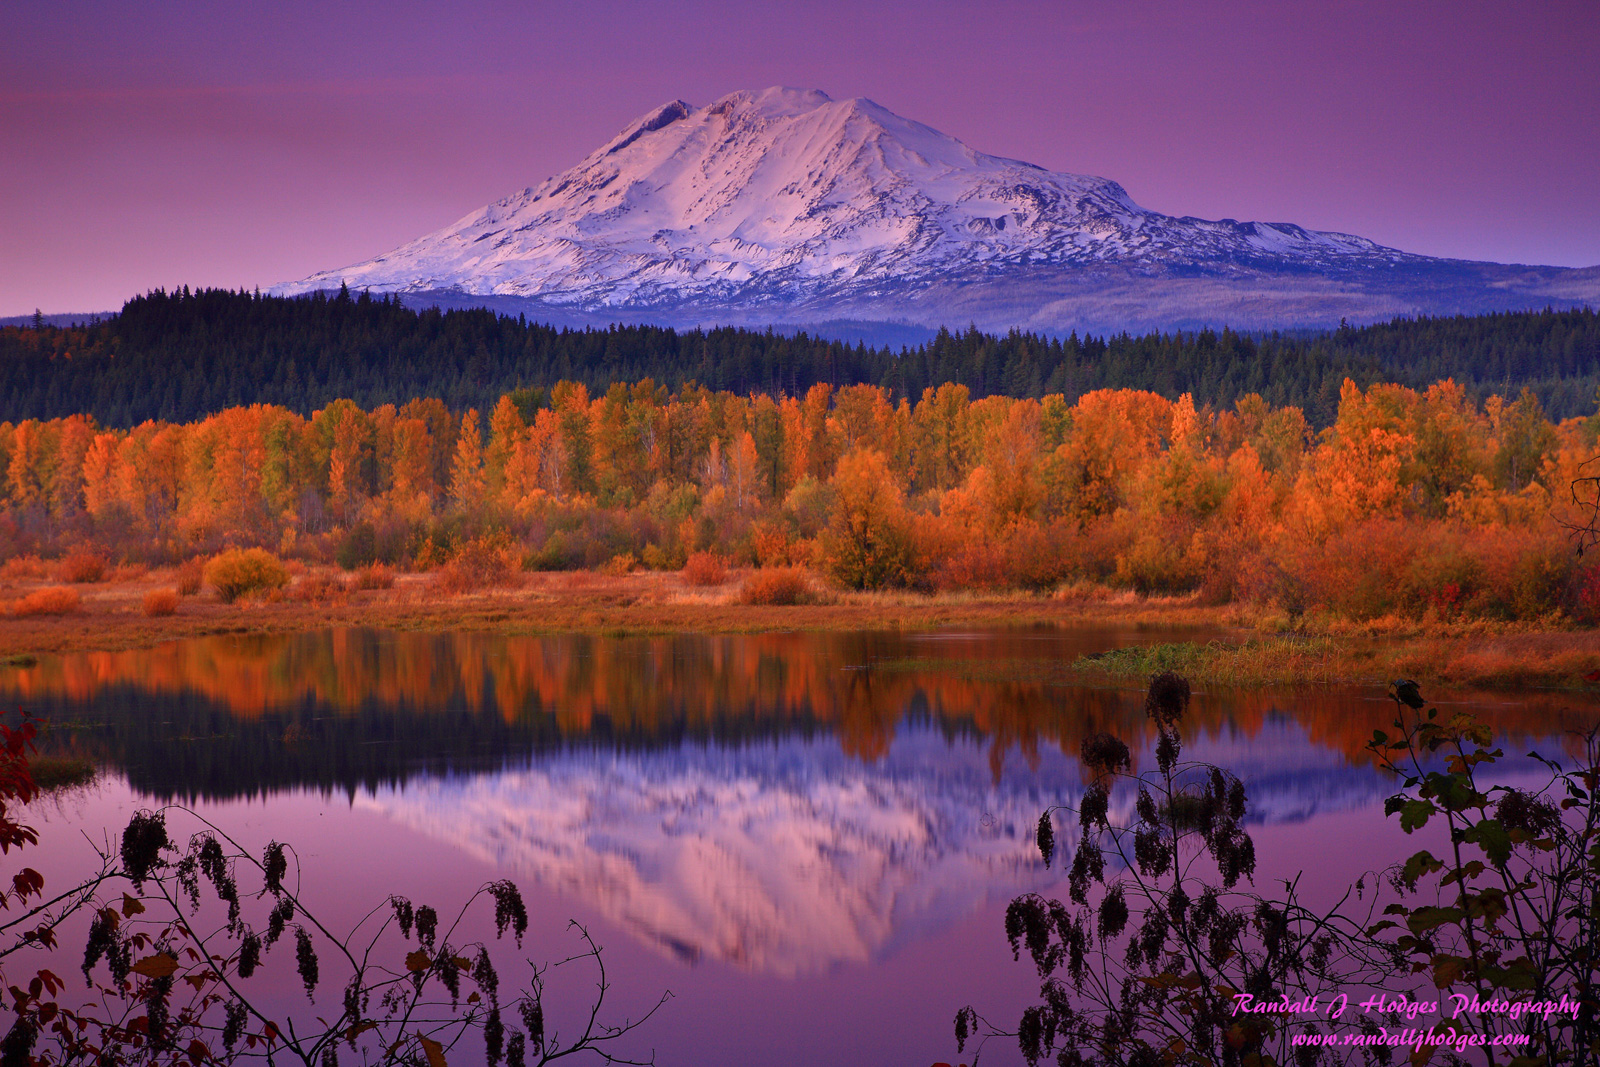 Alpenglow, Aurumn Foilage, Autumn Color, Destination, Fall Color, Fall Foilage, Mt Adams, Natural Area Preserve, Randall J Hodges Photography, Southern Washington, Sunset, Travel, Trout Lake, Trout La, photo